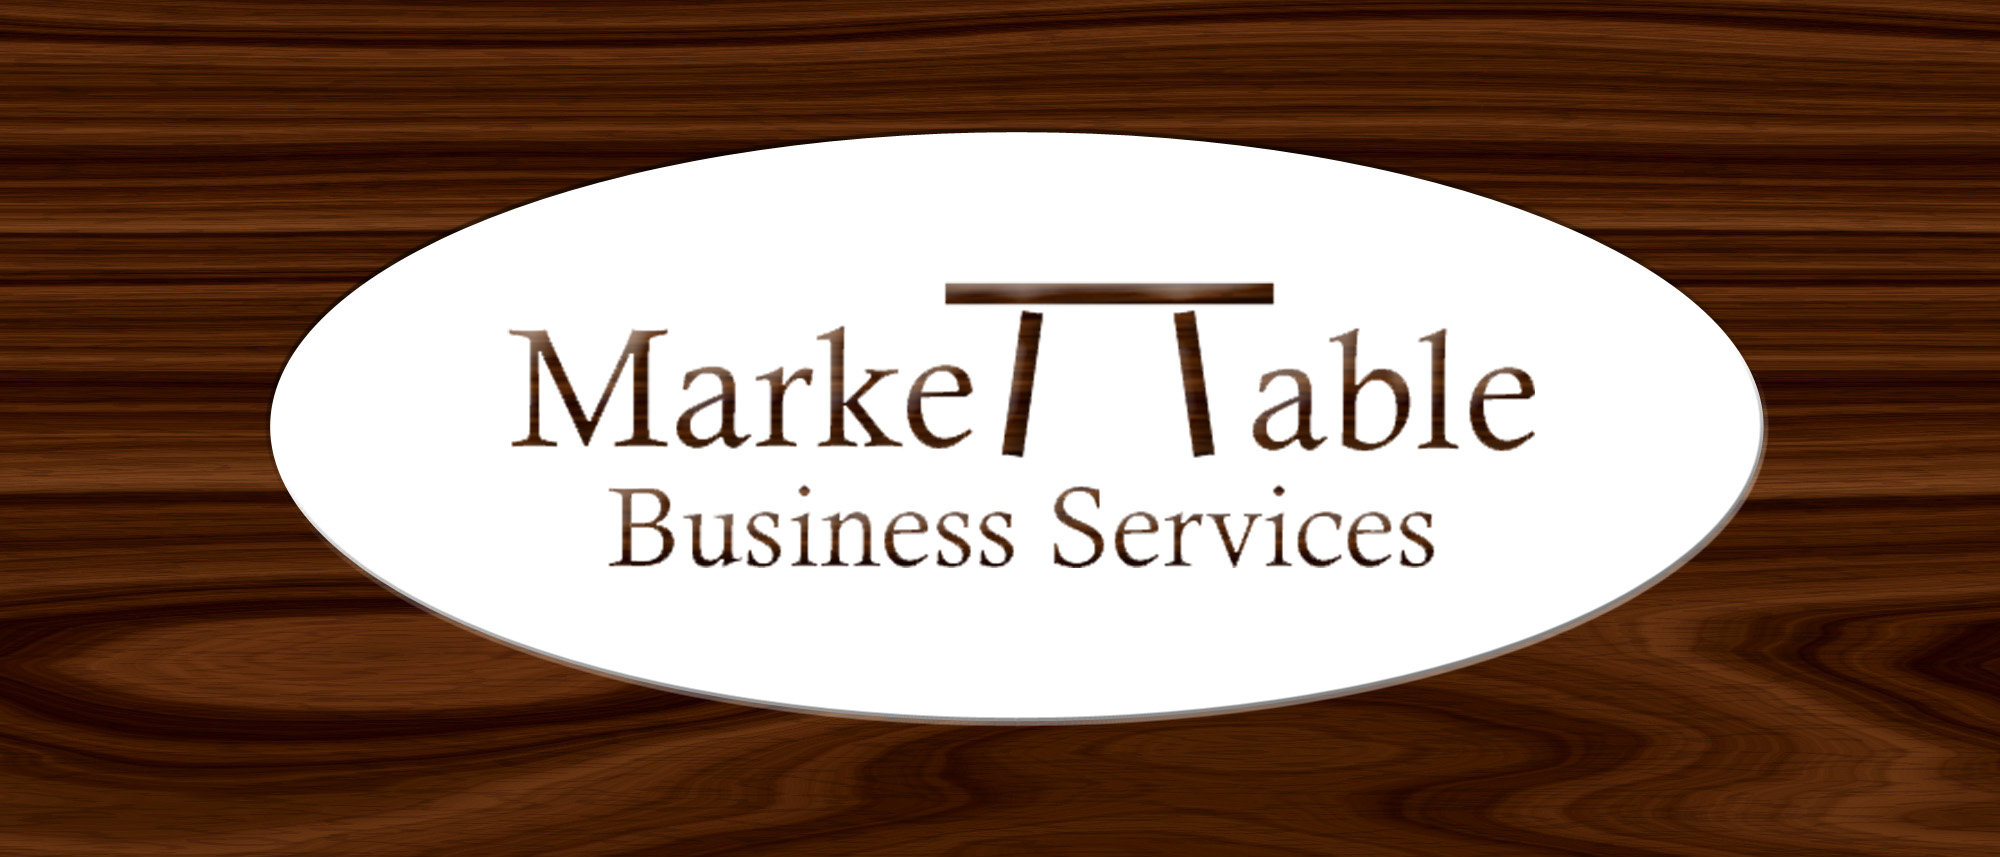 MarkeTTable logo